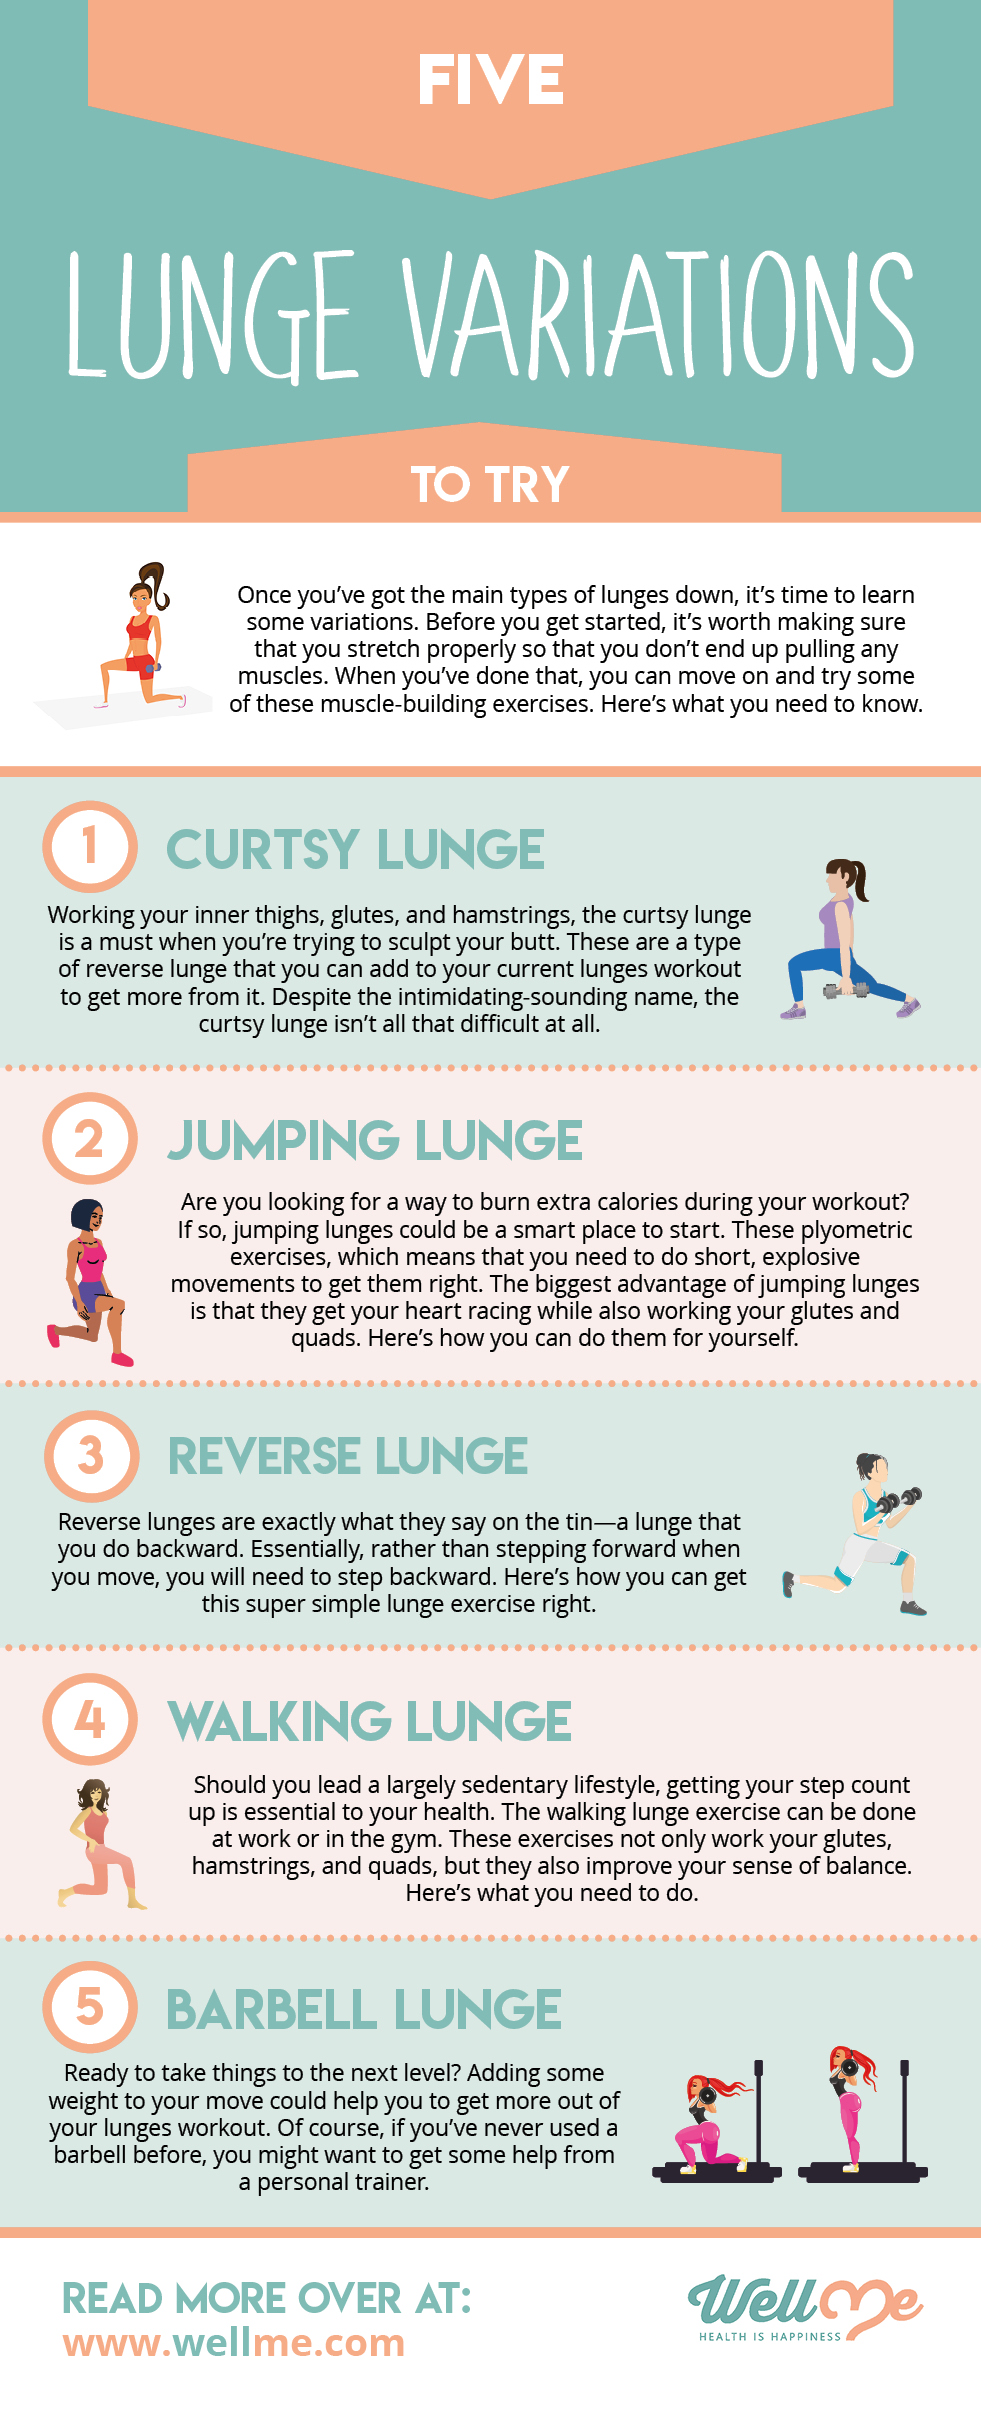 Five Lunge Variations to Try Infographic